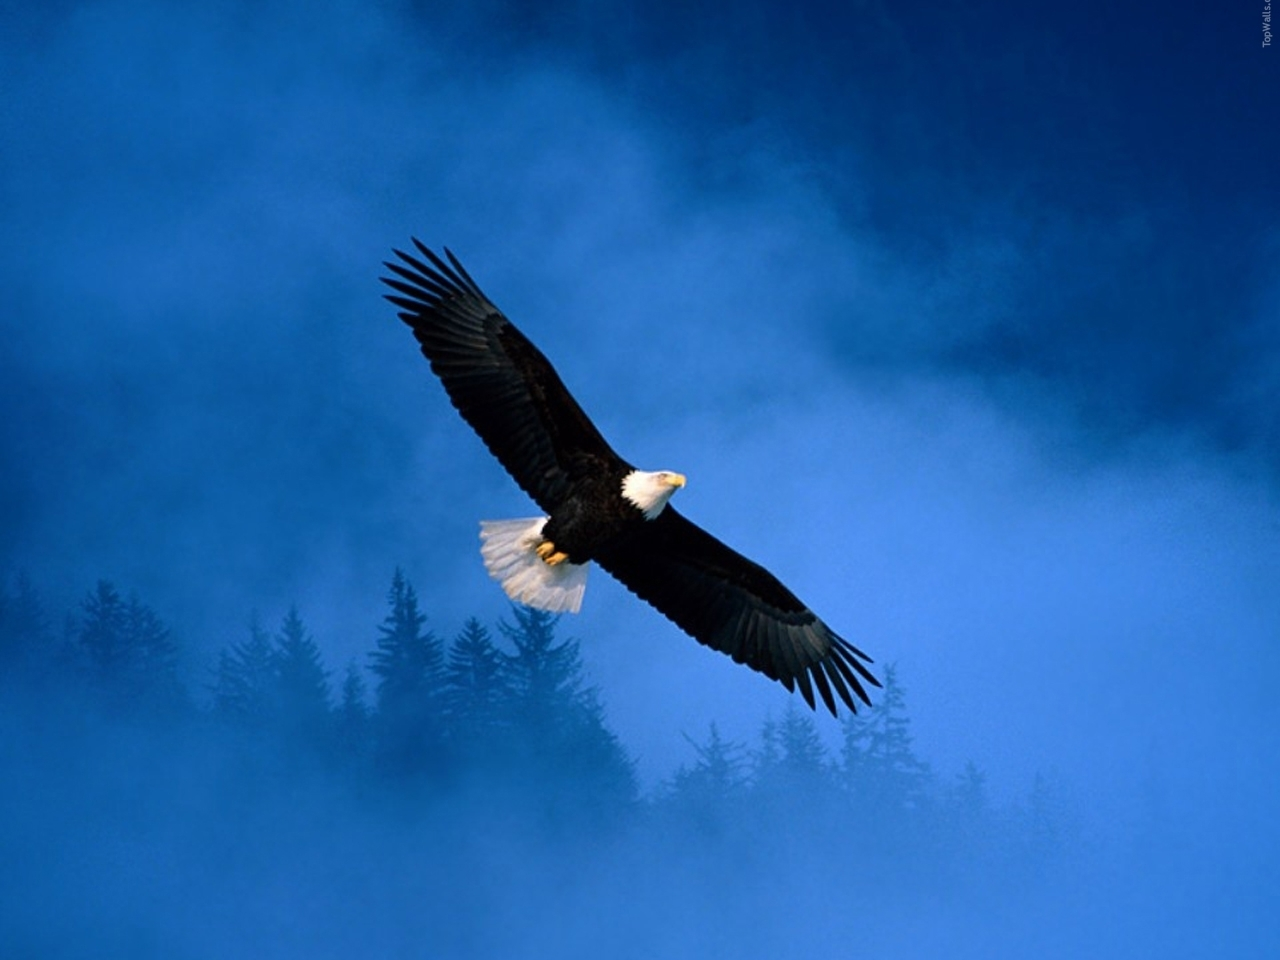 42981 download wallpaper Animals, Birds, Eagles screensavers and pictures for free